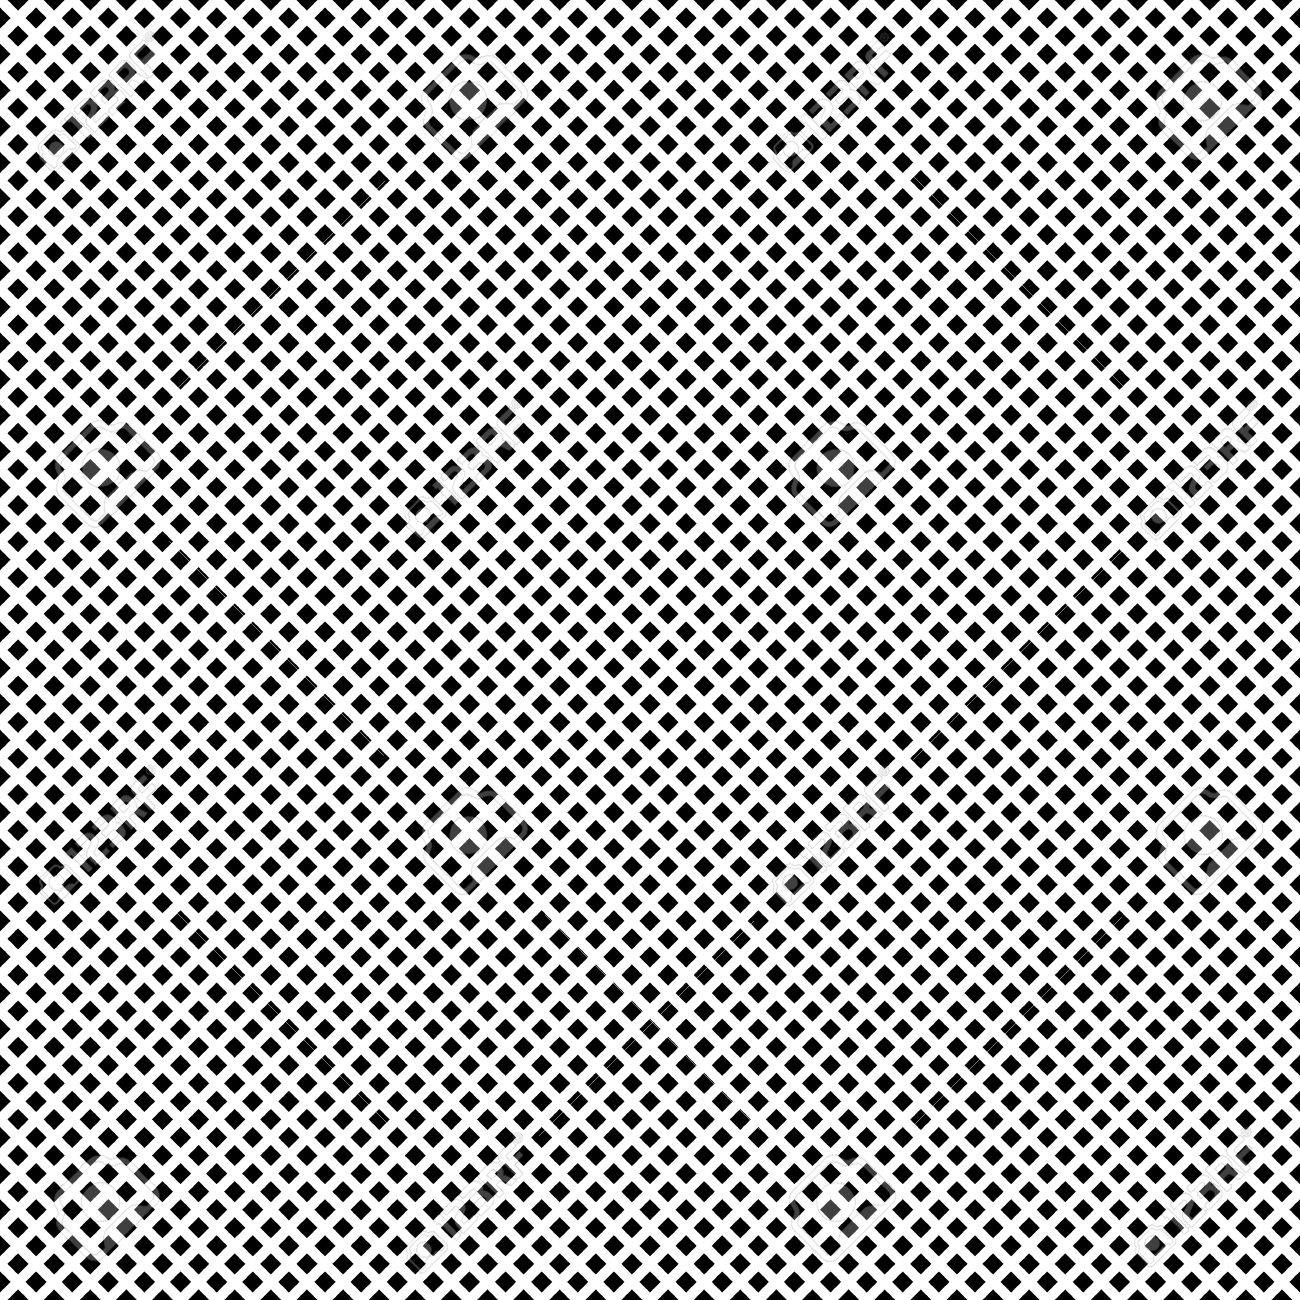 Grid, mesh seamless pattern. Abstract background with grid texture. - 51199800